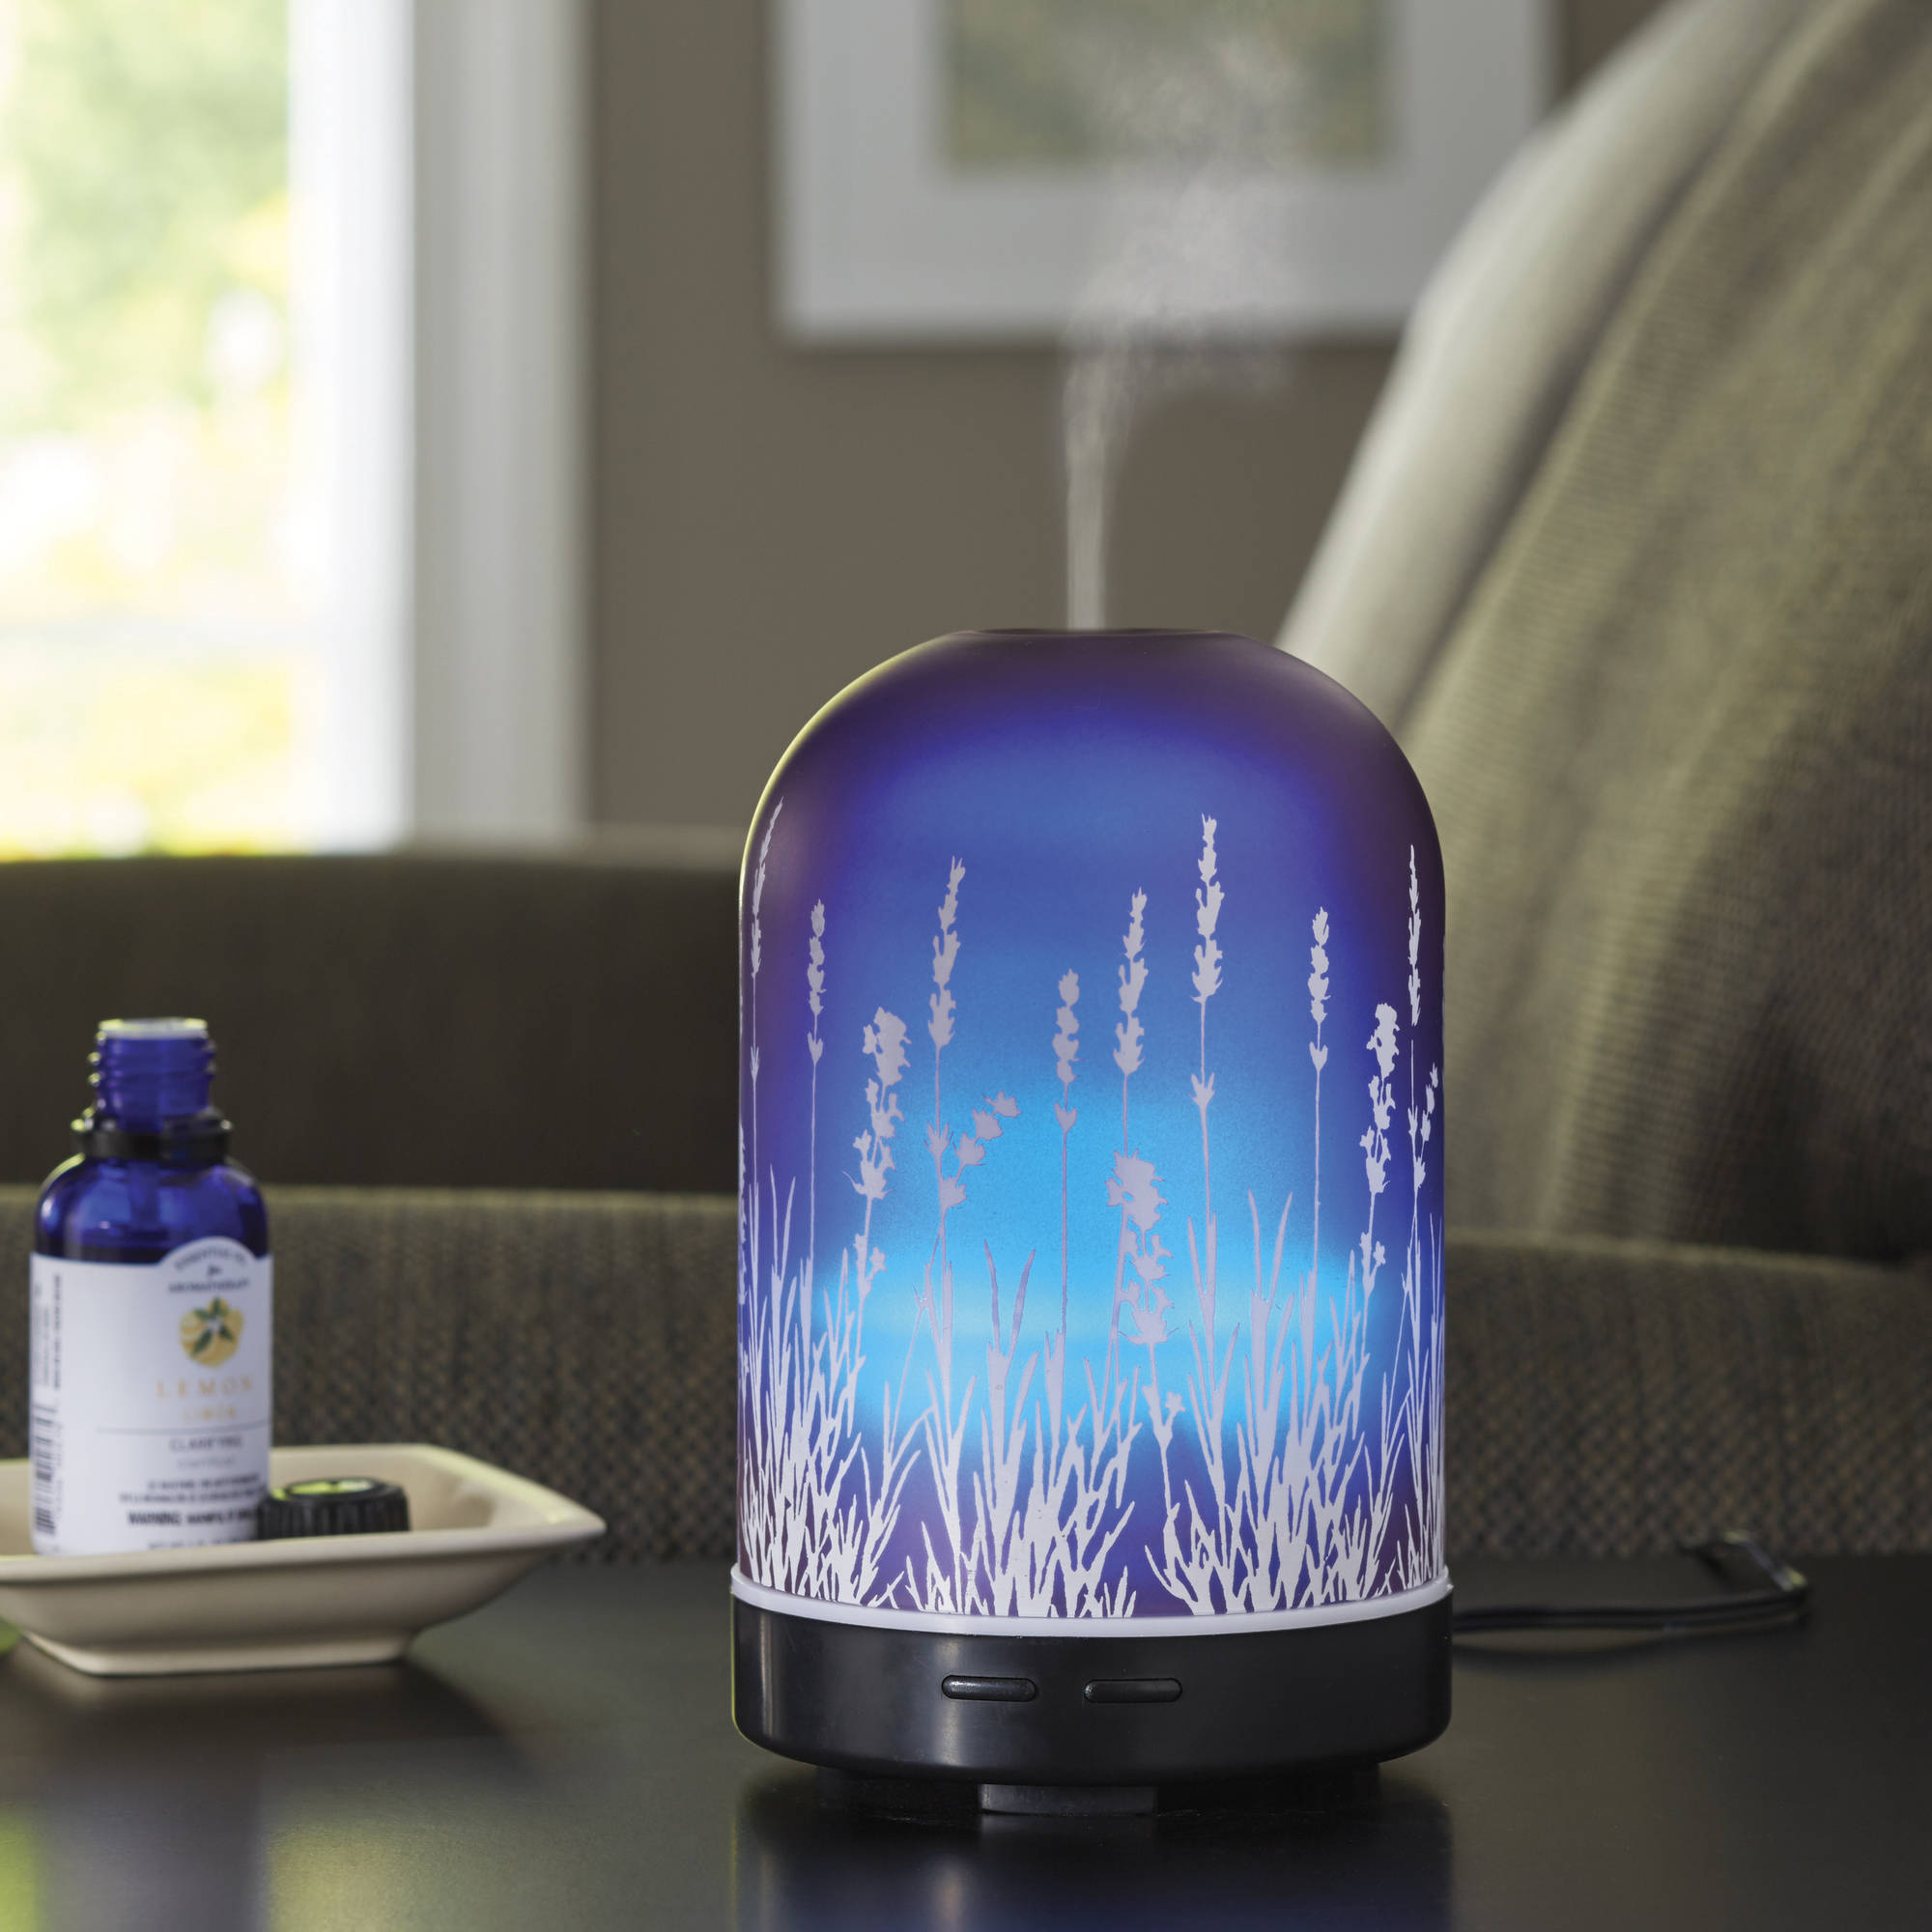 Better Homes and Gardens Essential Oil Diffuser, Lavender Fields